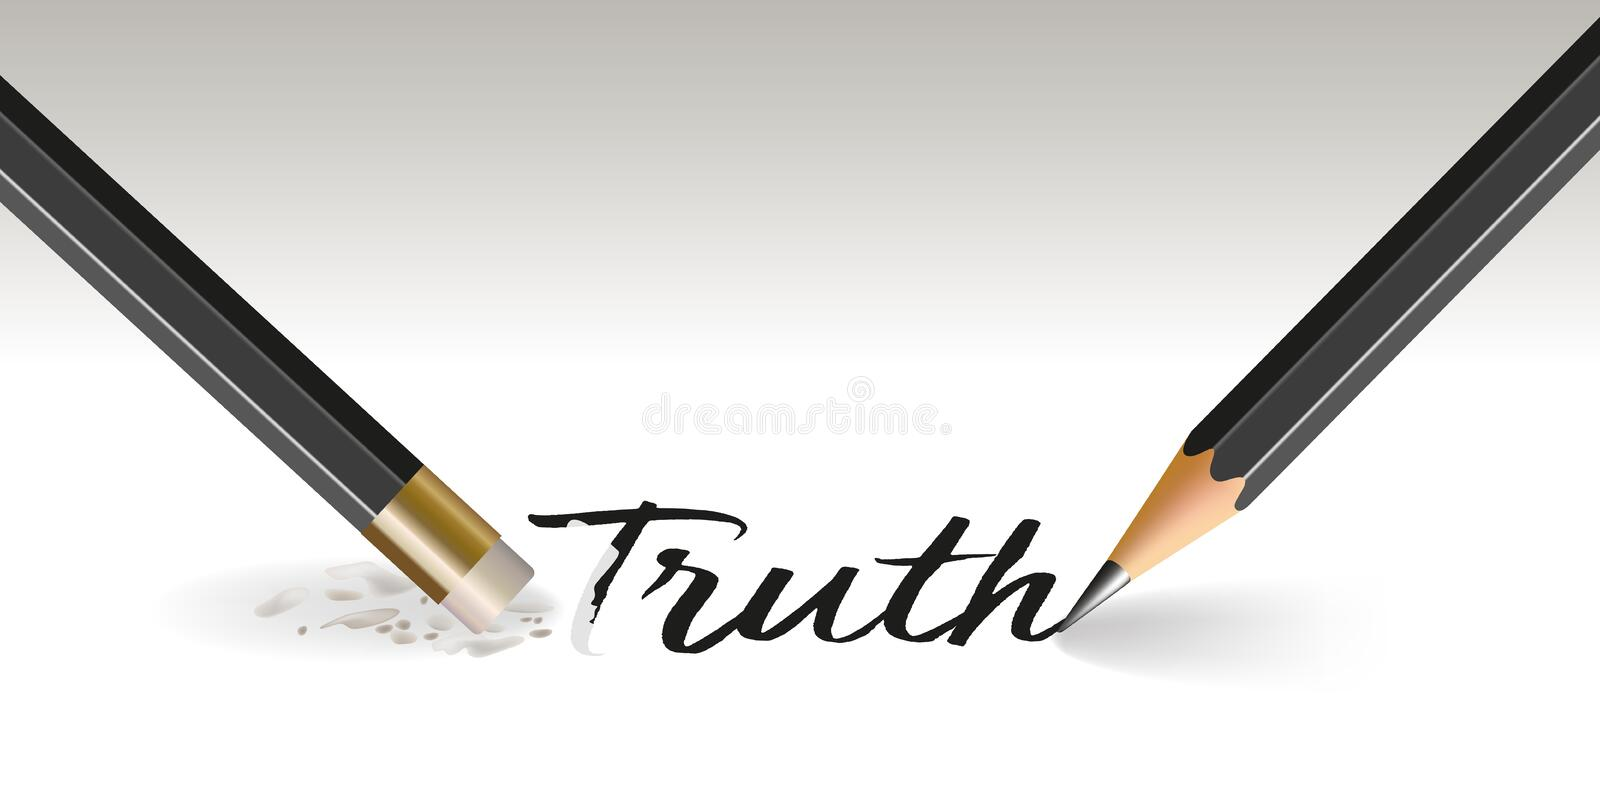 Concept of truth jugulated with the word that disappears with a blow of gum. vector illustration